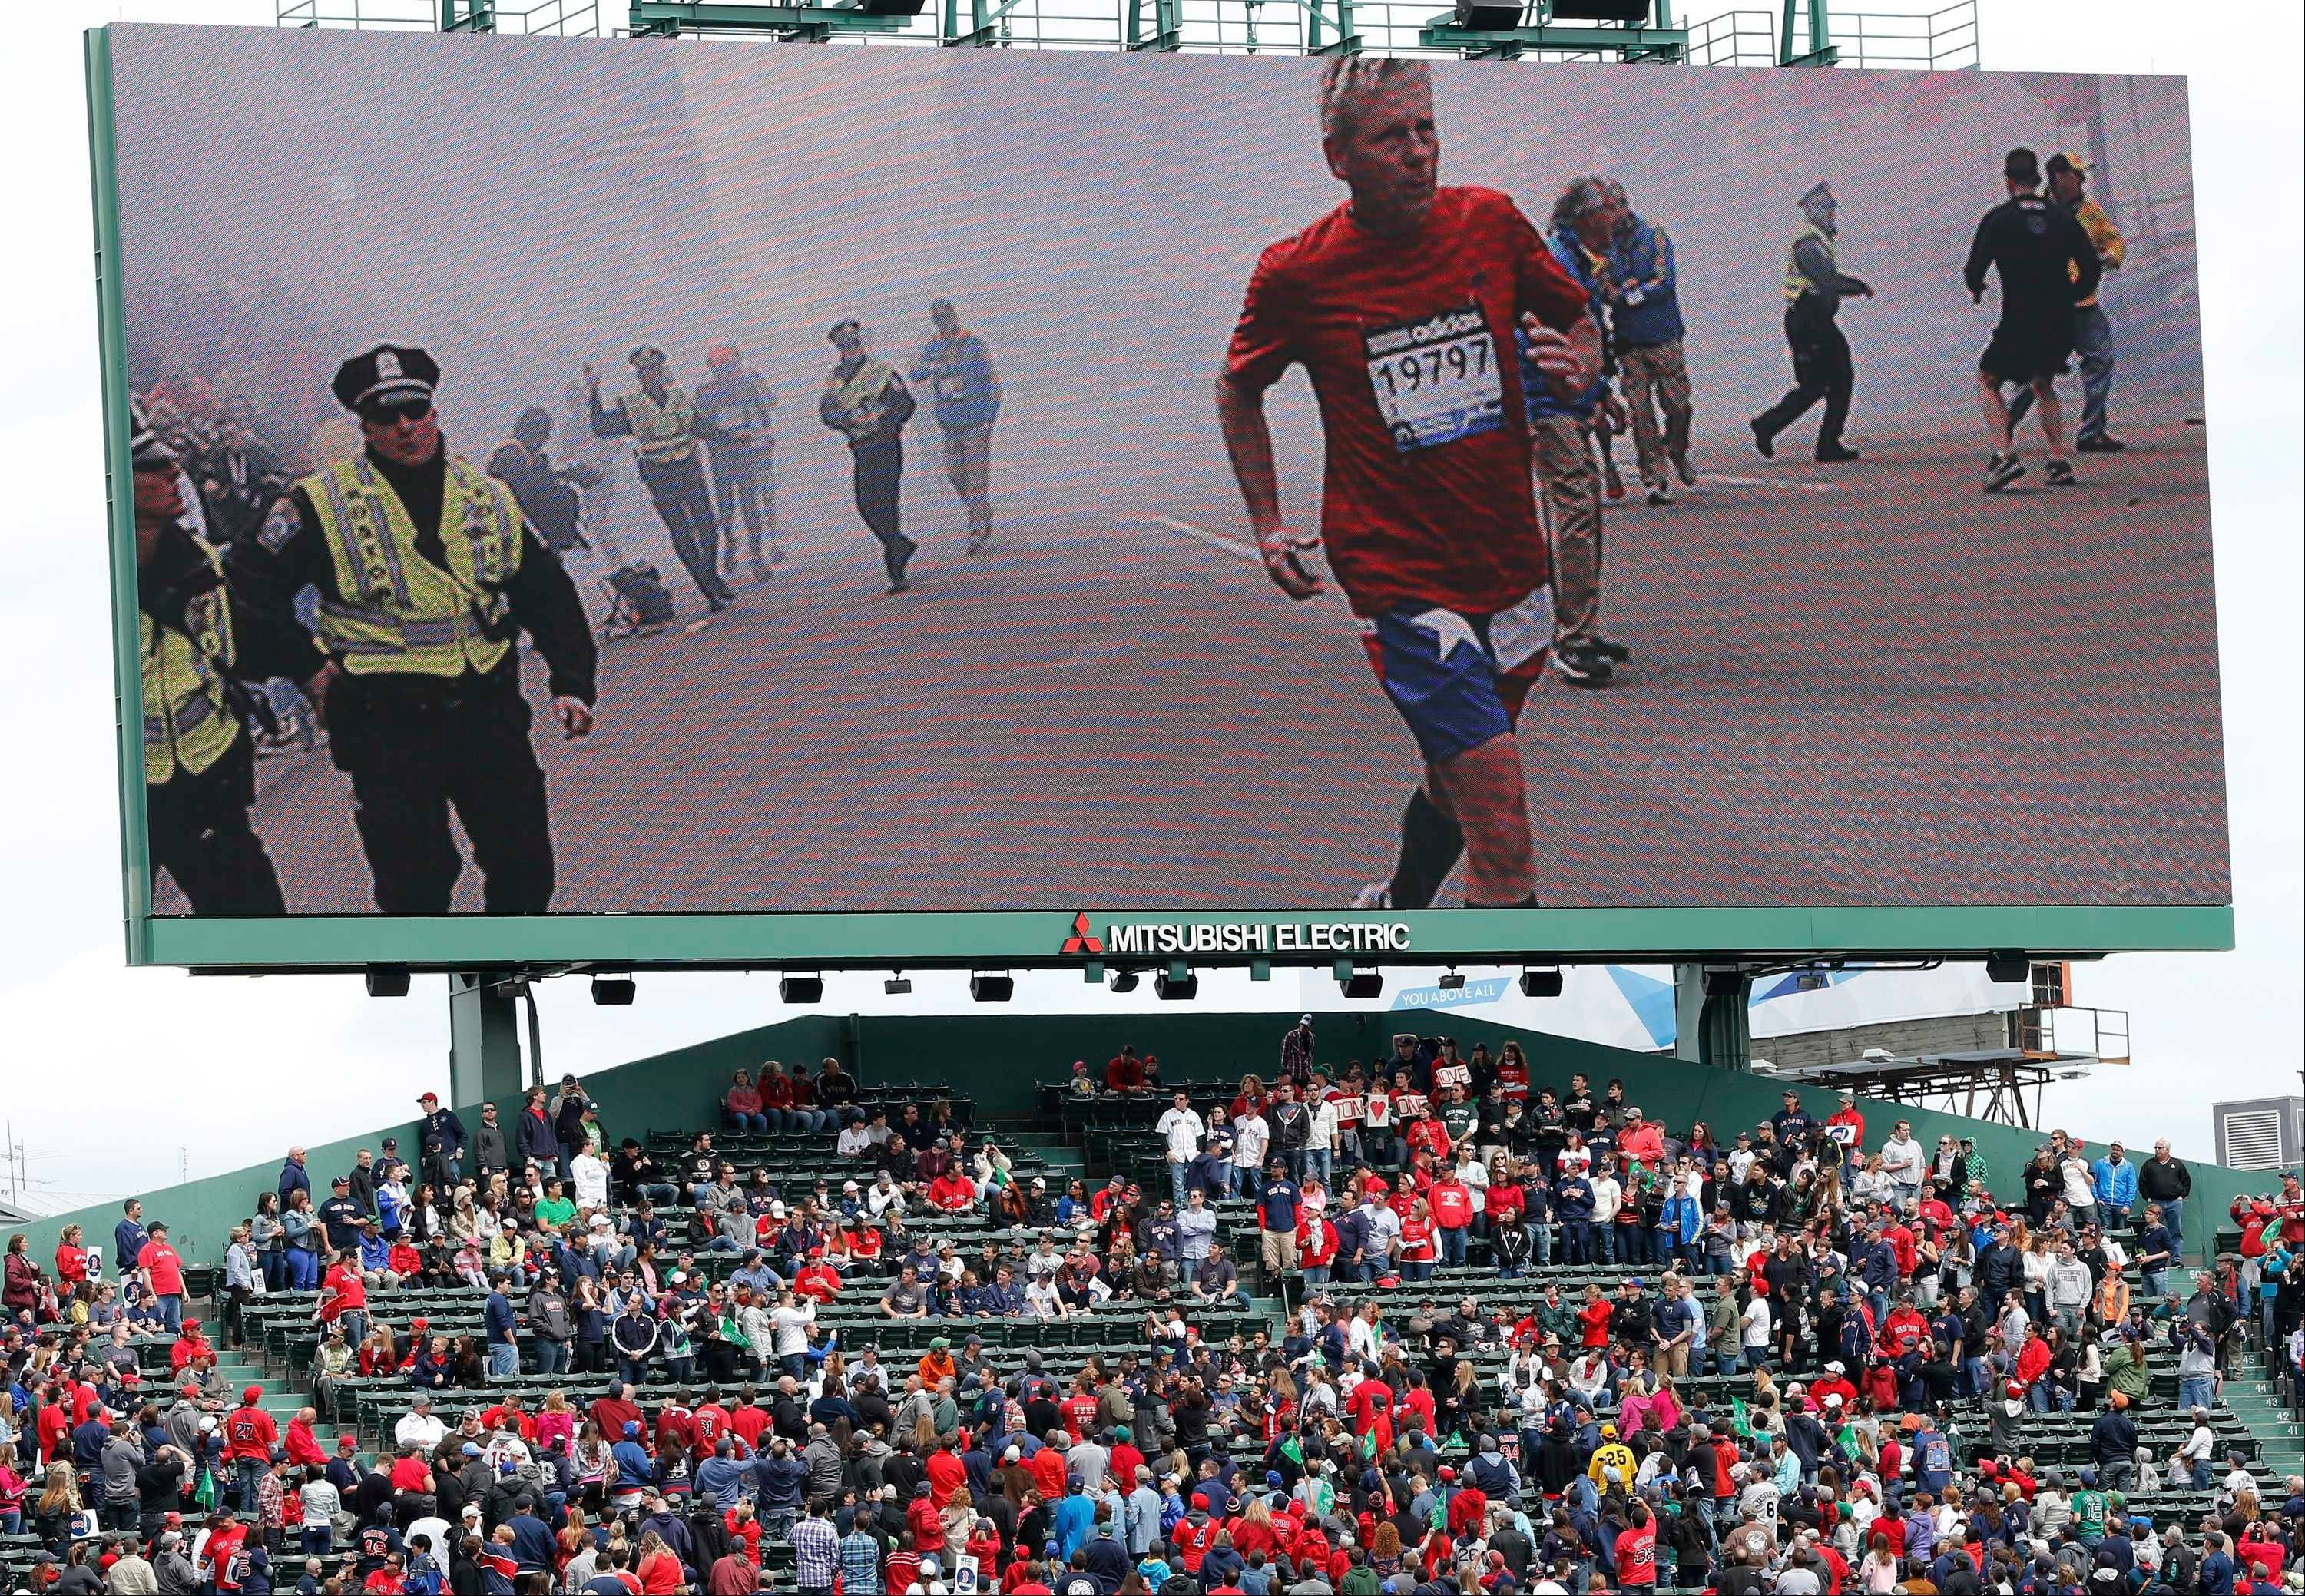 Scenes from the Boston Marathon bombings is displayed on an outfield screen before a baseball game between the Boston Red Sox and the Kansas City Royals in Boston, Saturday, April 20, 2013.